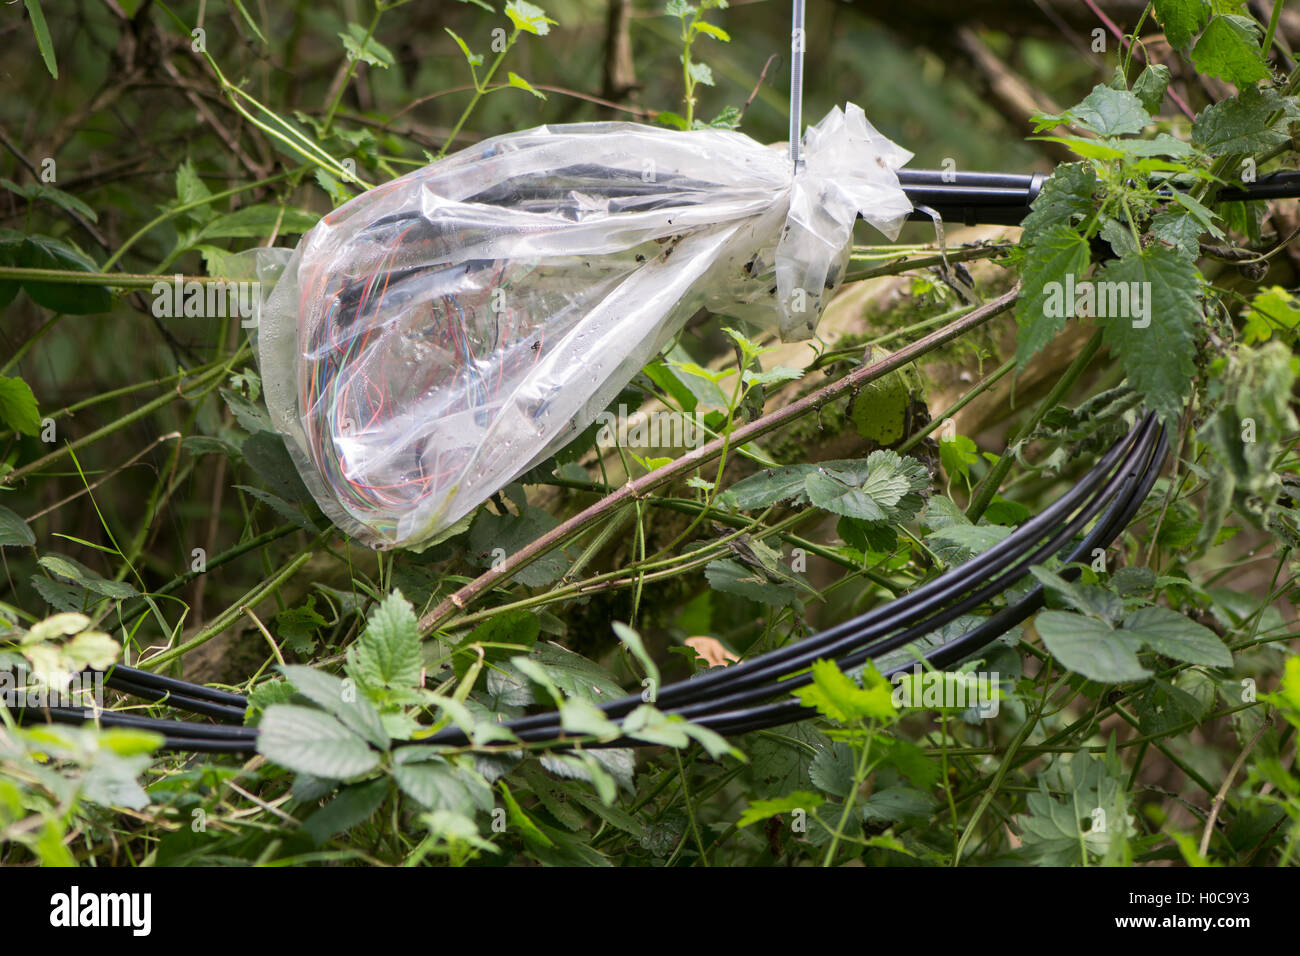 Temporary repair of telephone cable. Spliced wires among vegetation within telecommunication cable after hasty repair - Stock Image